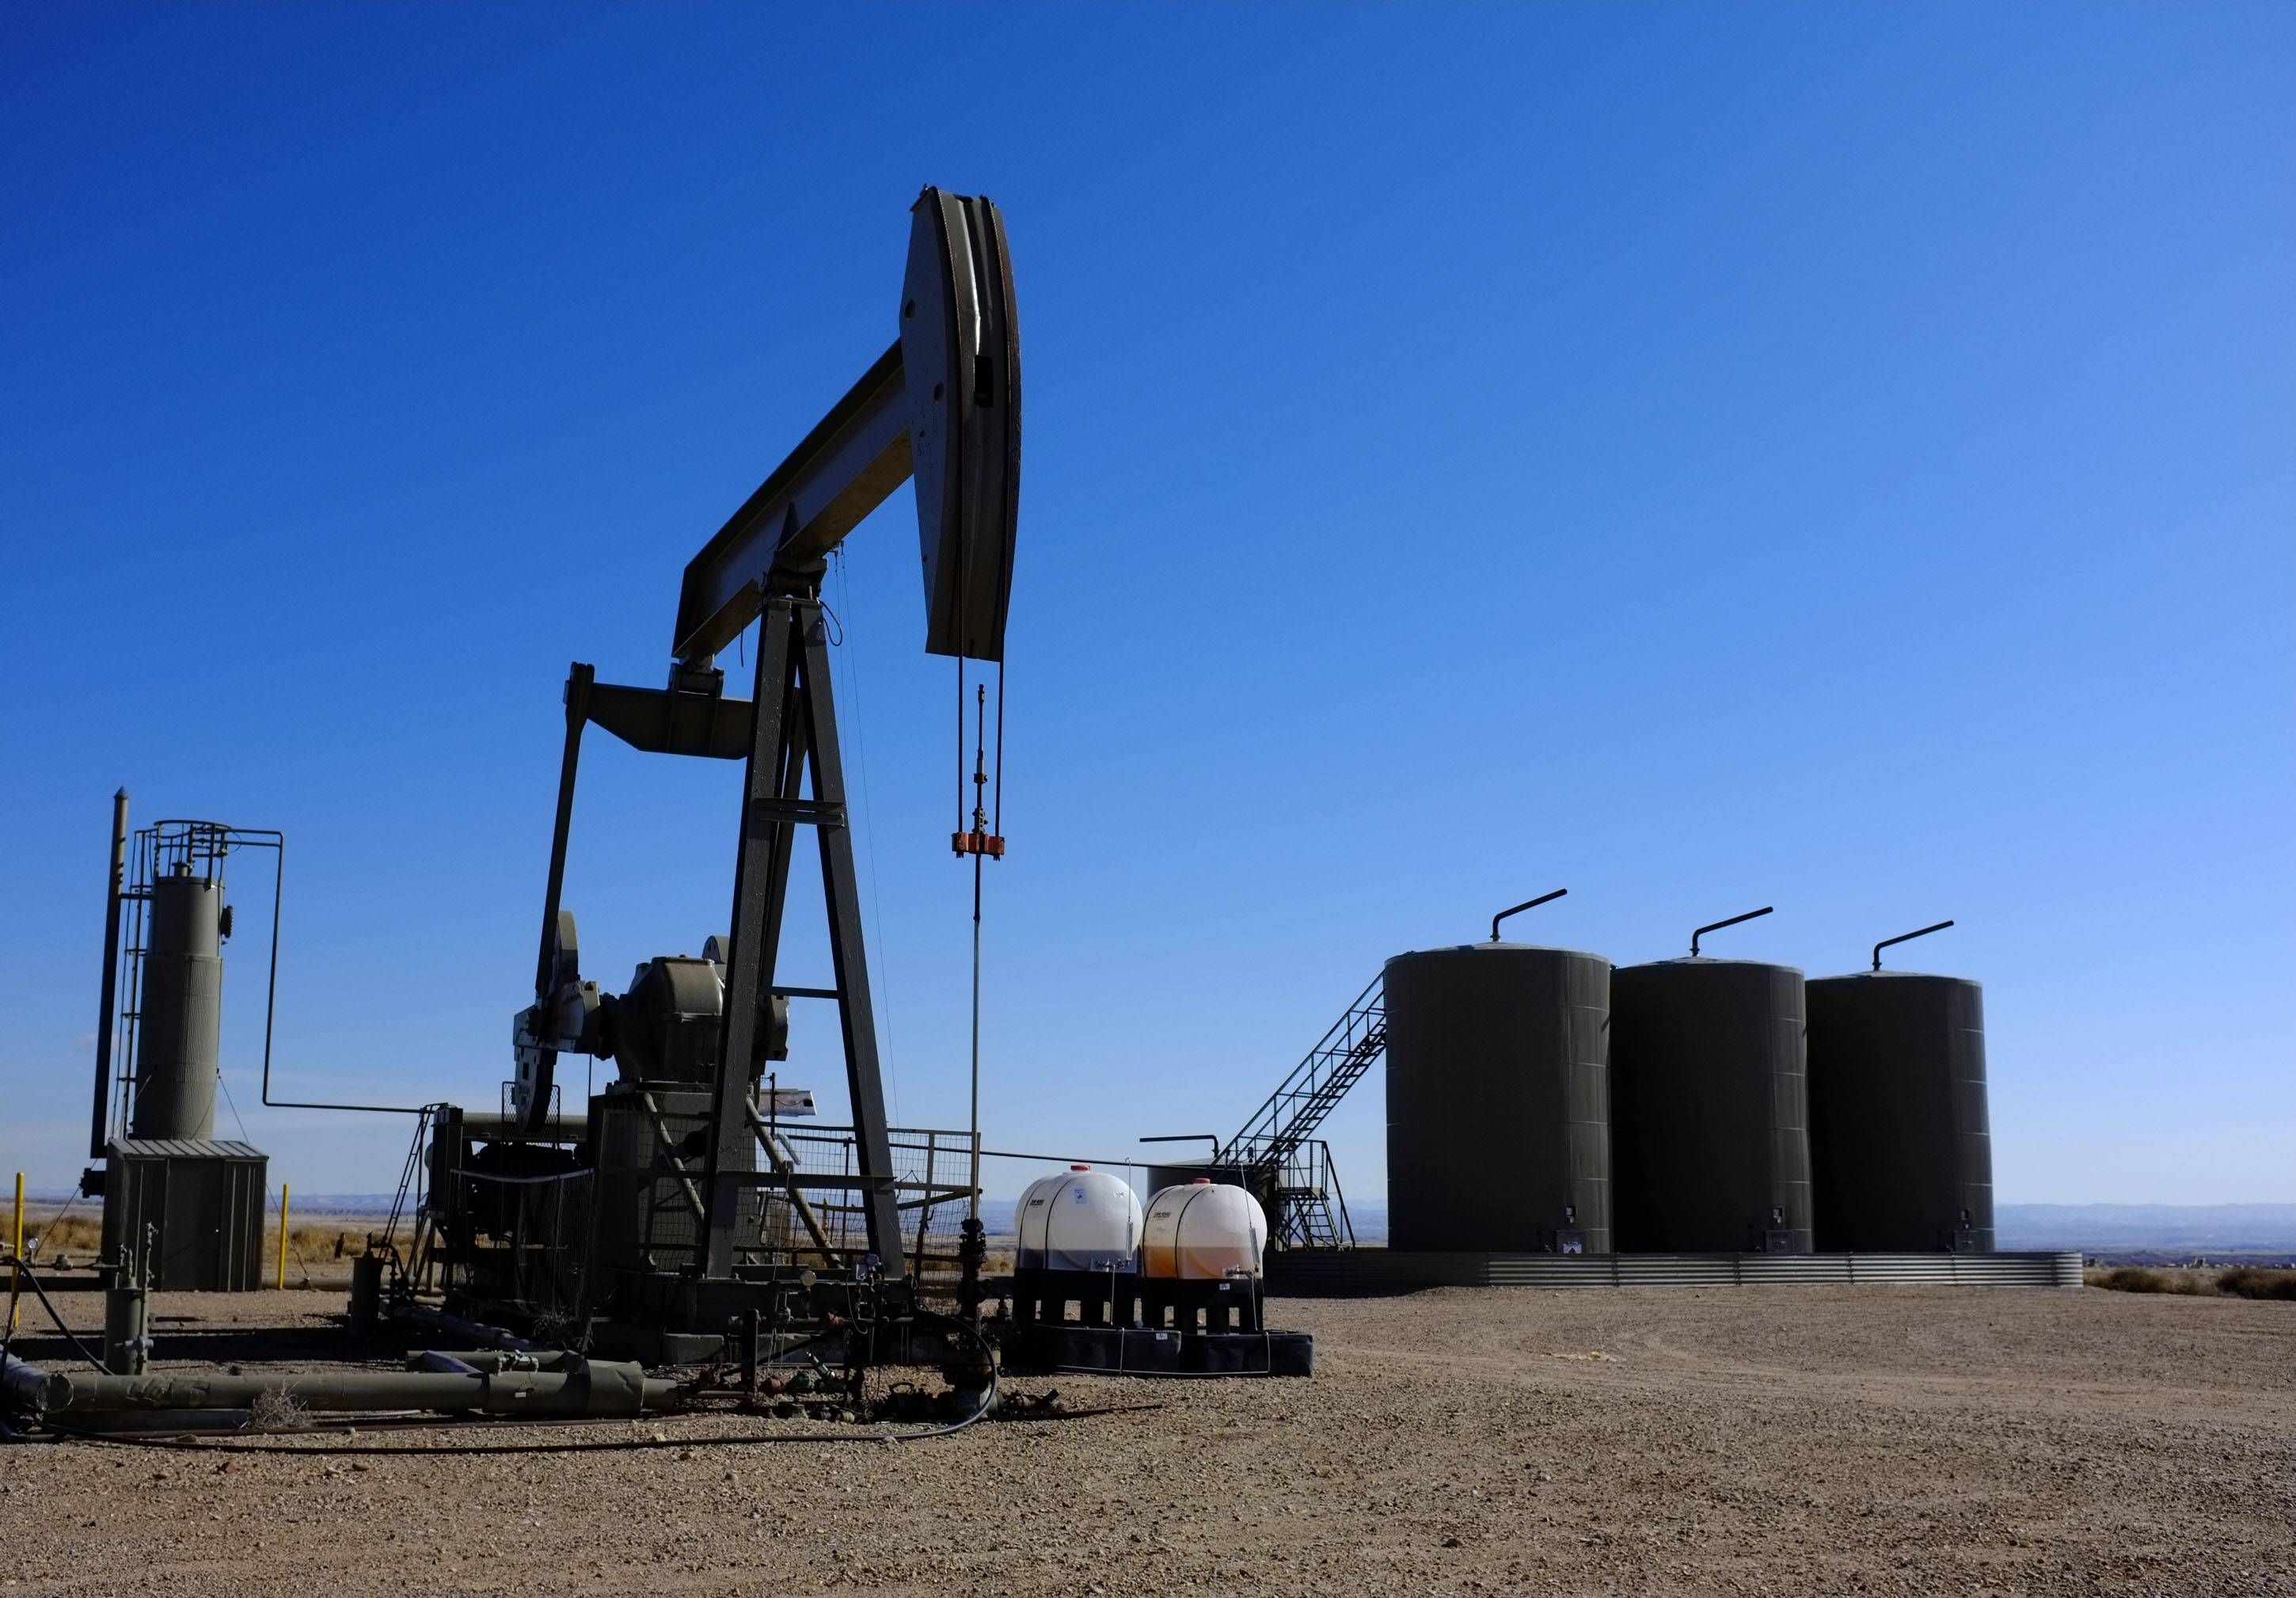 Equipment in the oil fields of the Uintah Basin, southeast of Vernal, Utah.